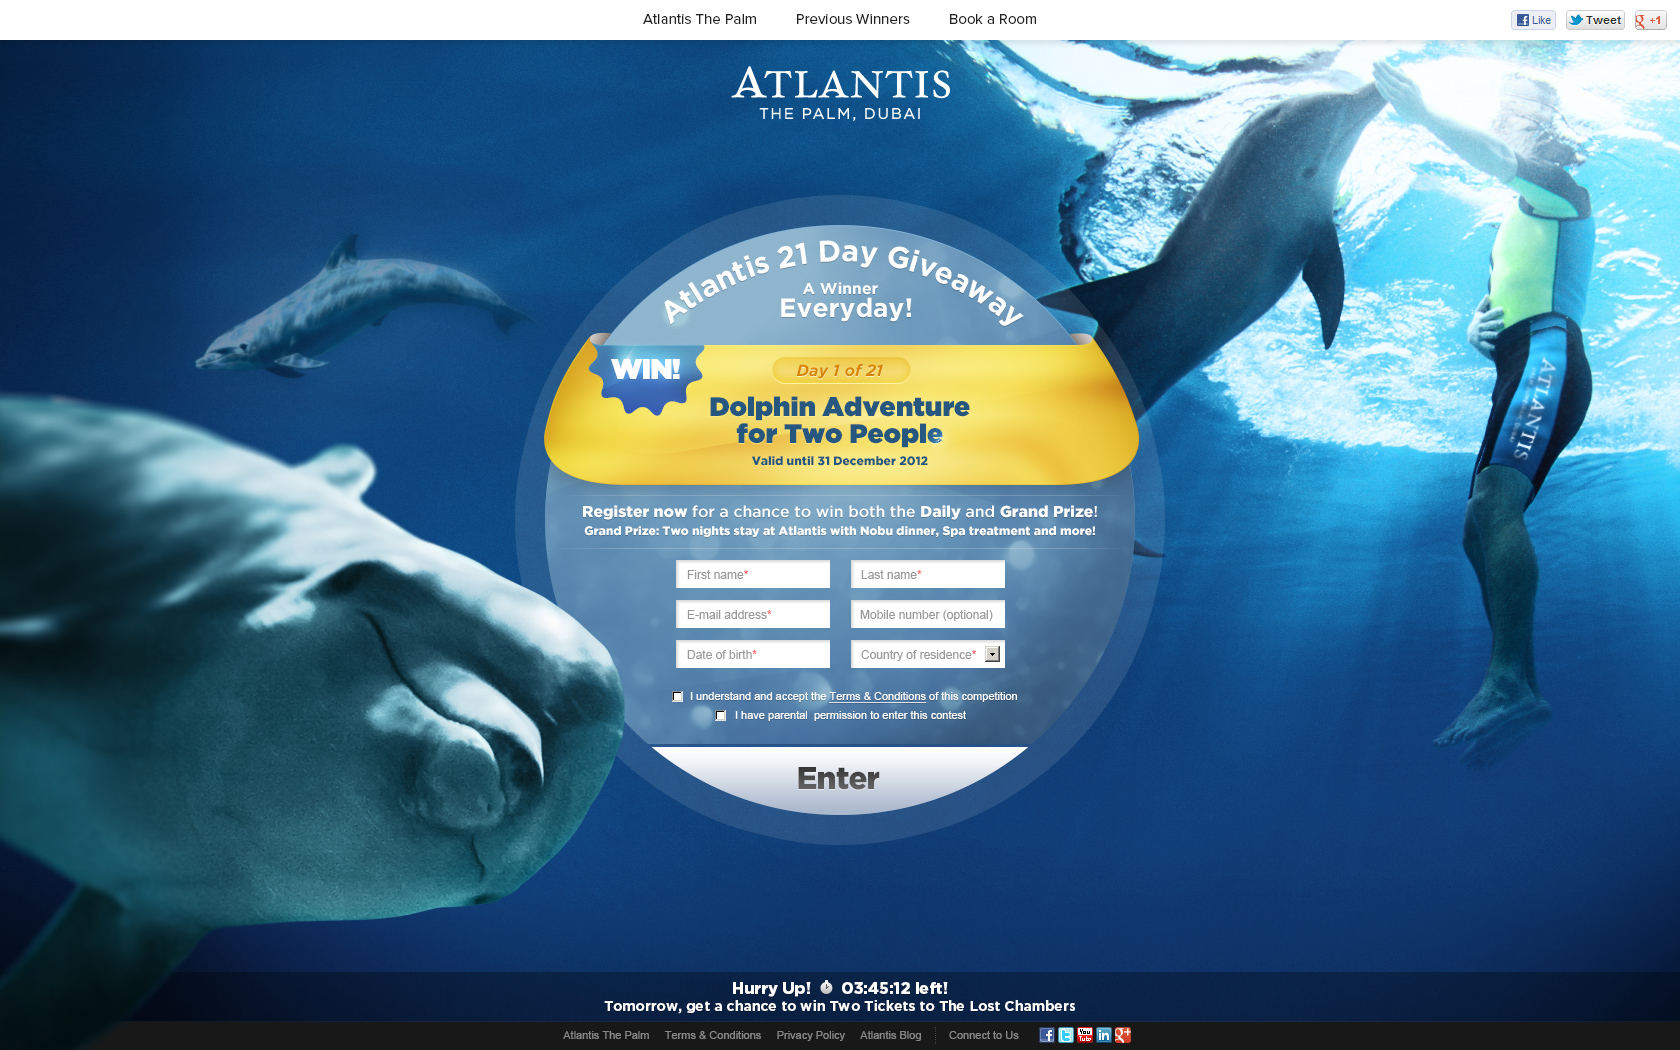 Day 1 - Win a Dolphin Adventure for Two People